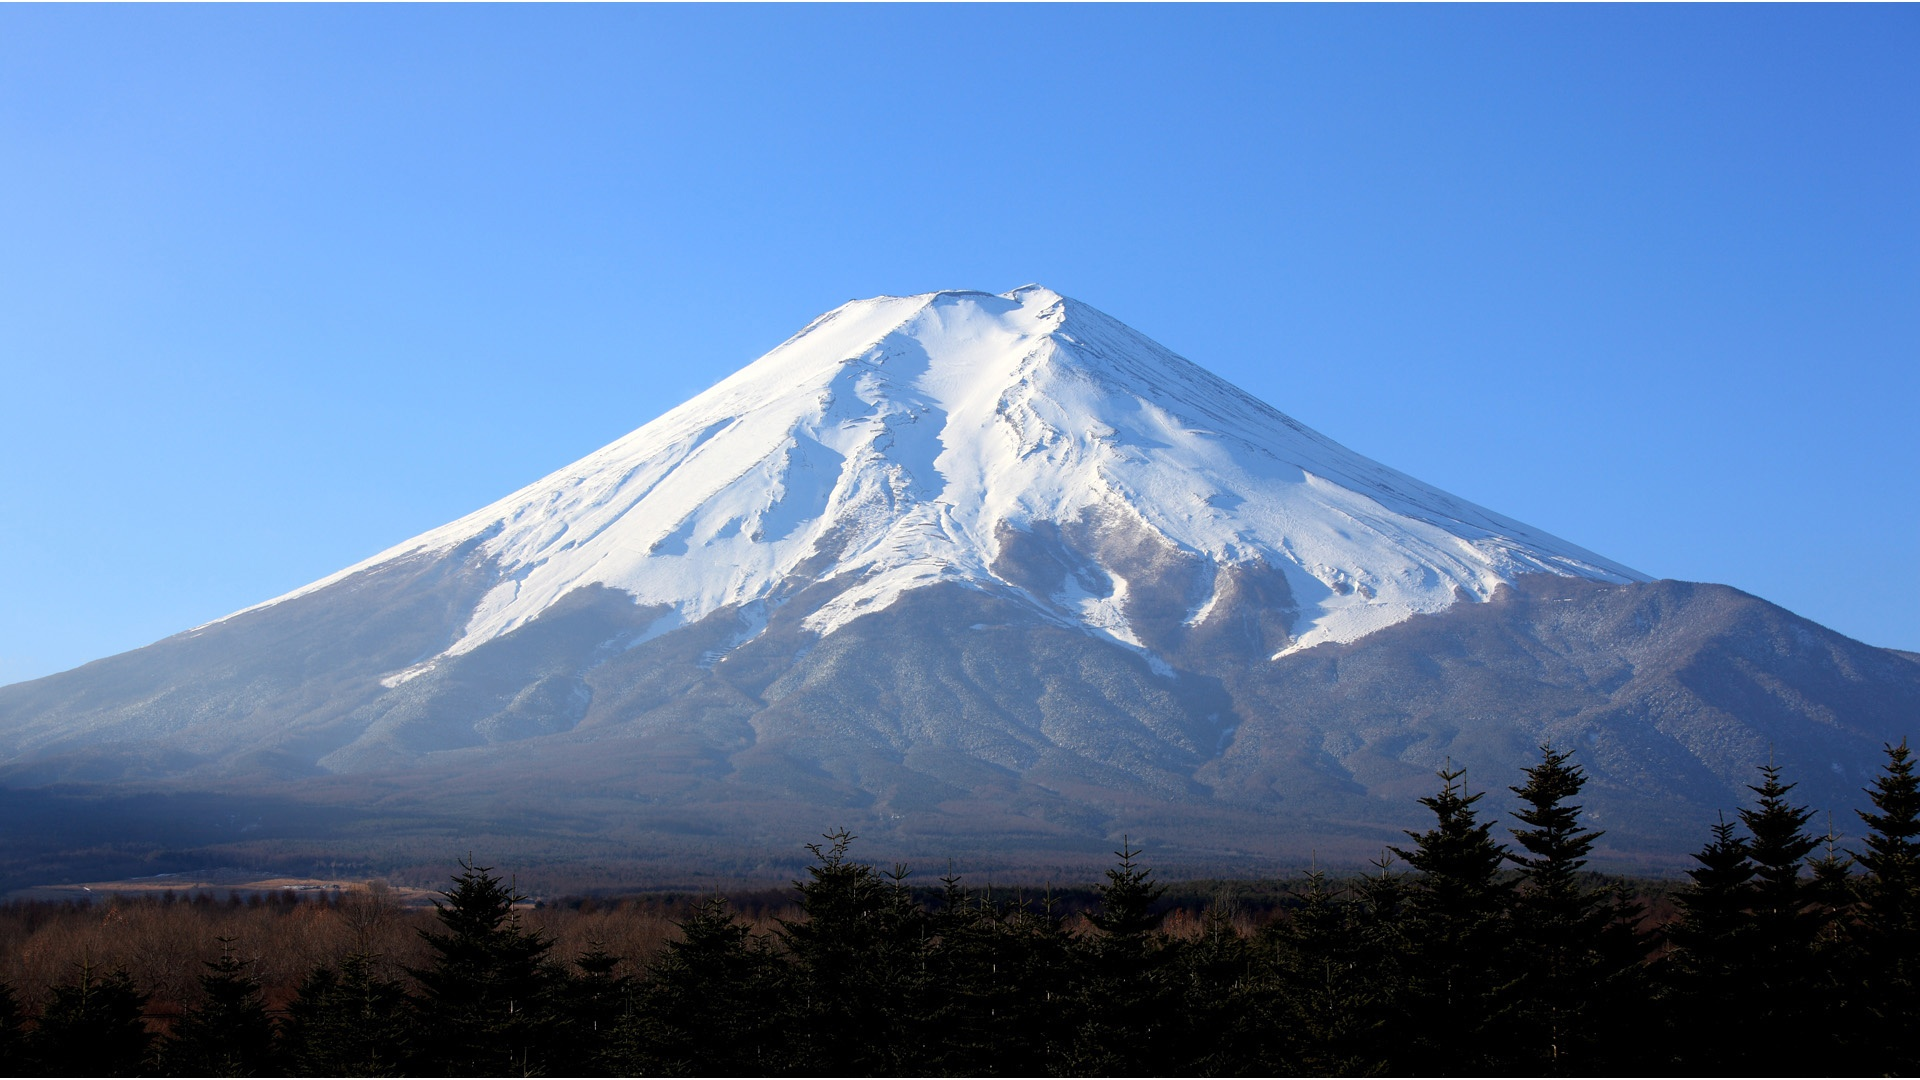 Mt Fuji Wallpaper 1920x1080 79697